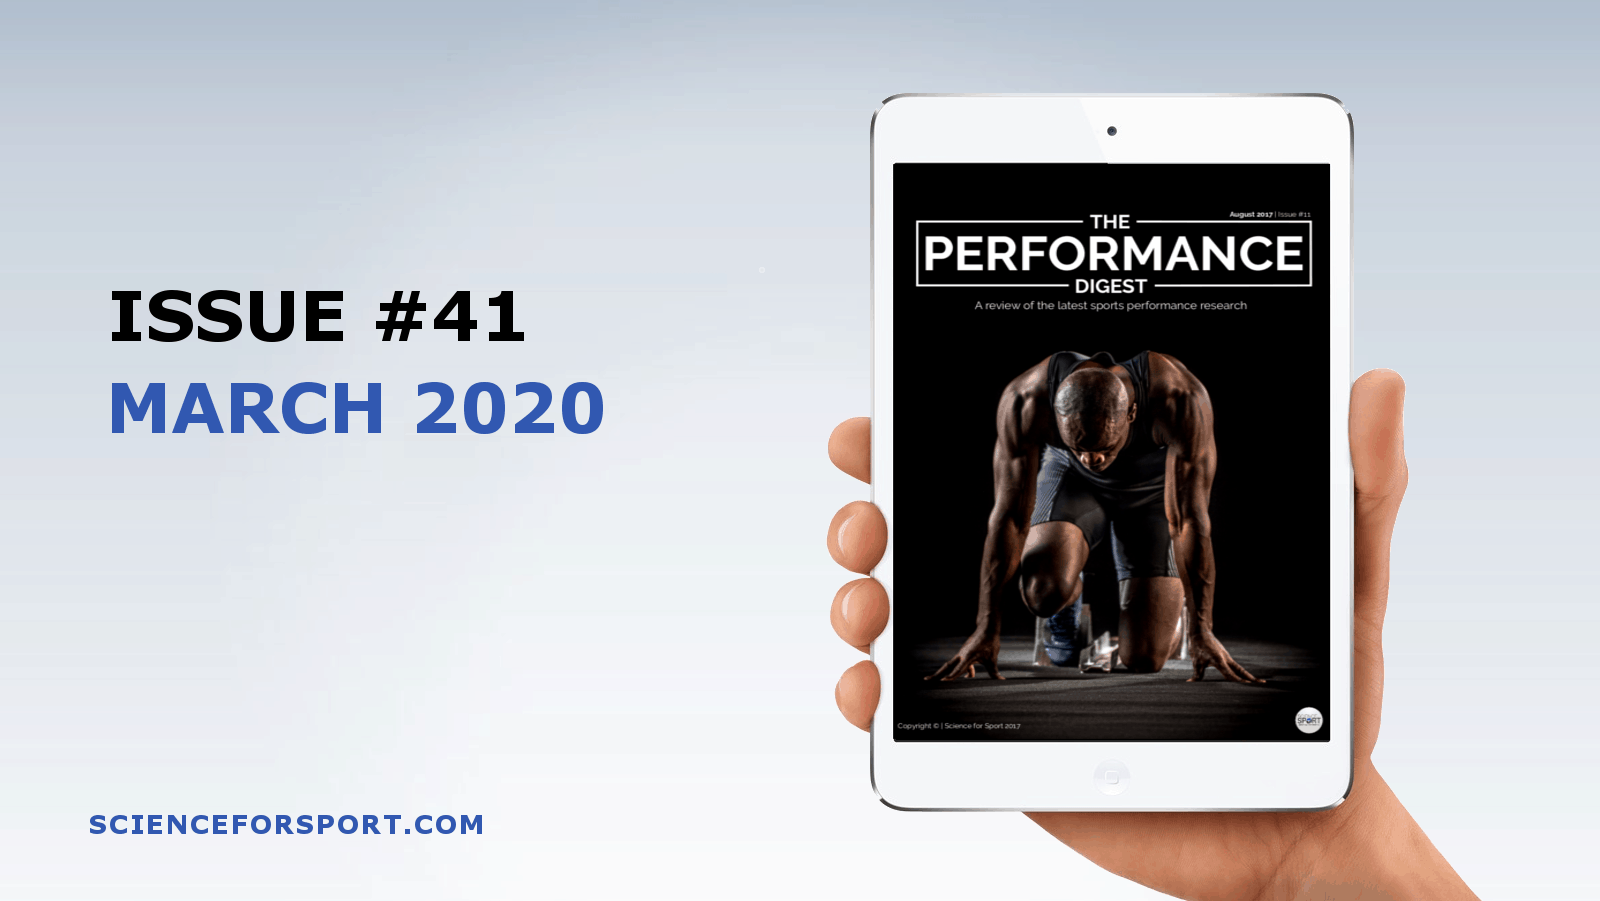 Performance Digest - March 20 (Issue #41)